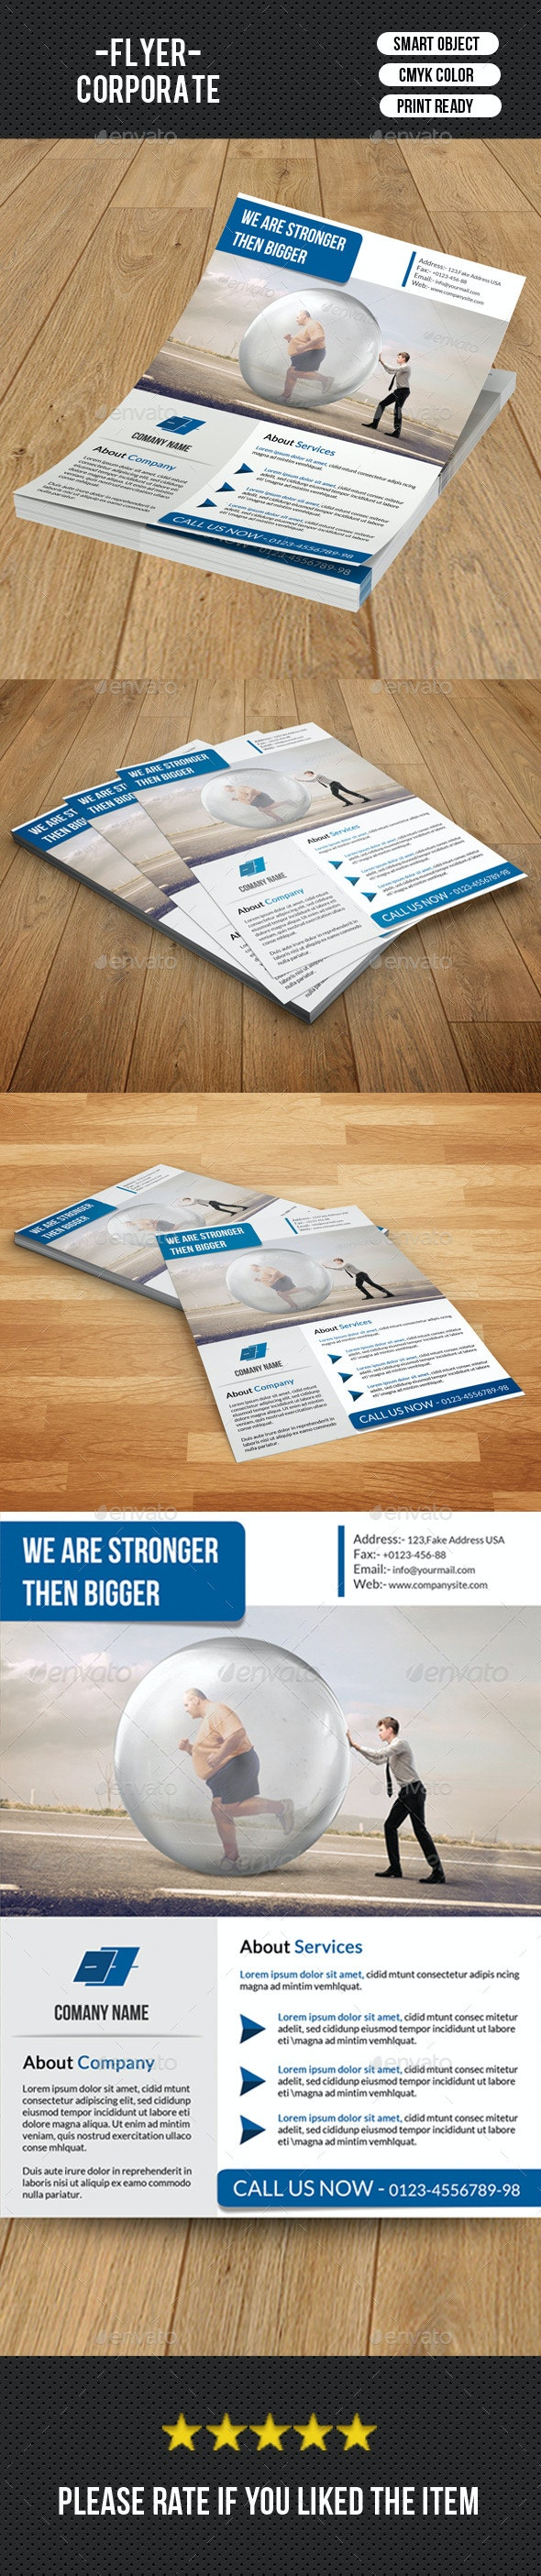 Corporate Flyer Template-V131 - Corporate Flyers